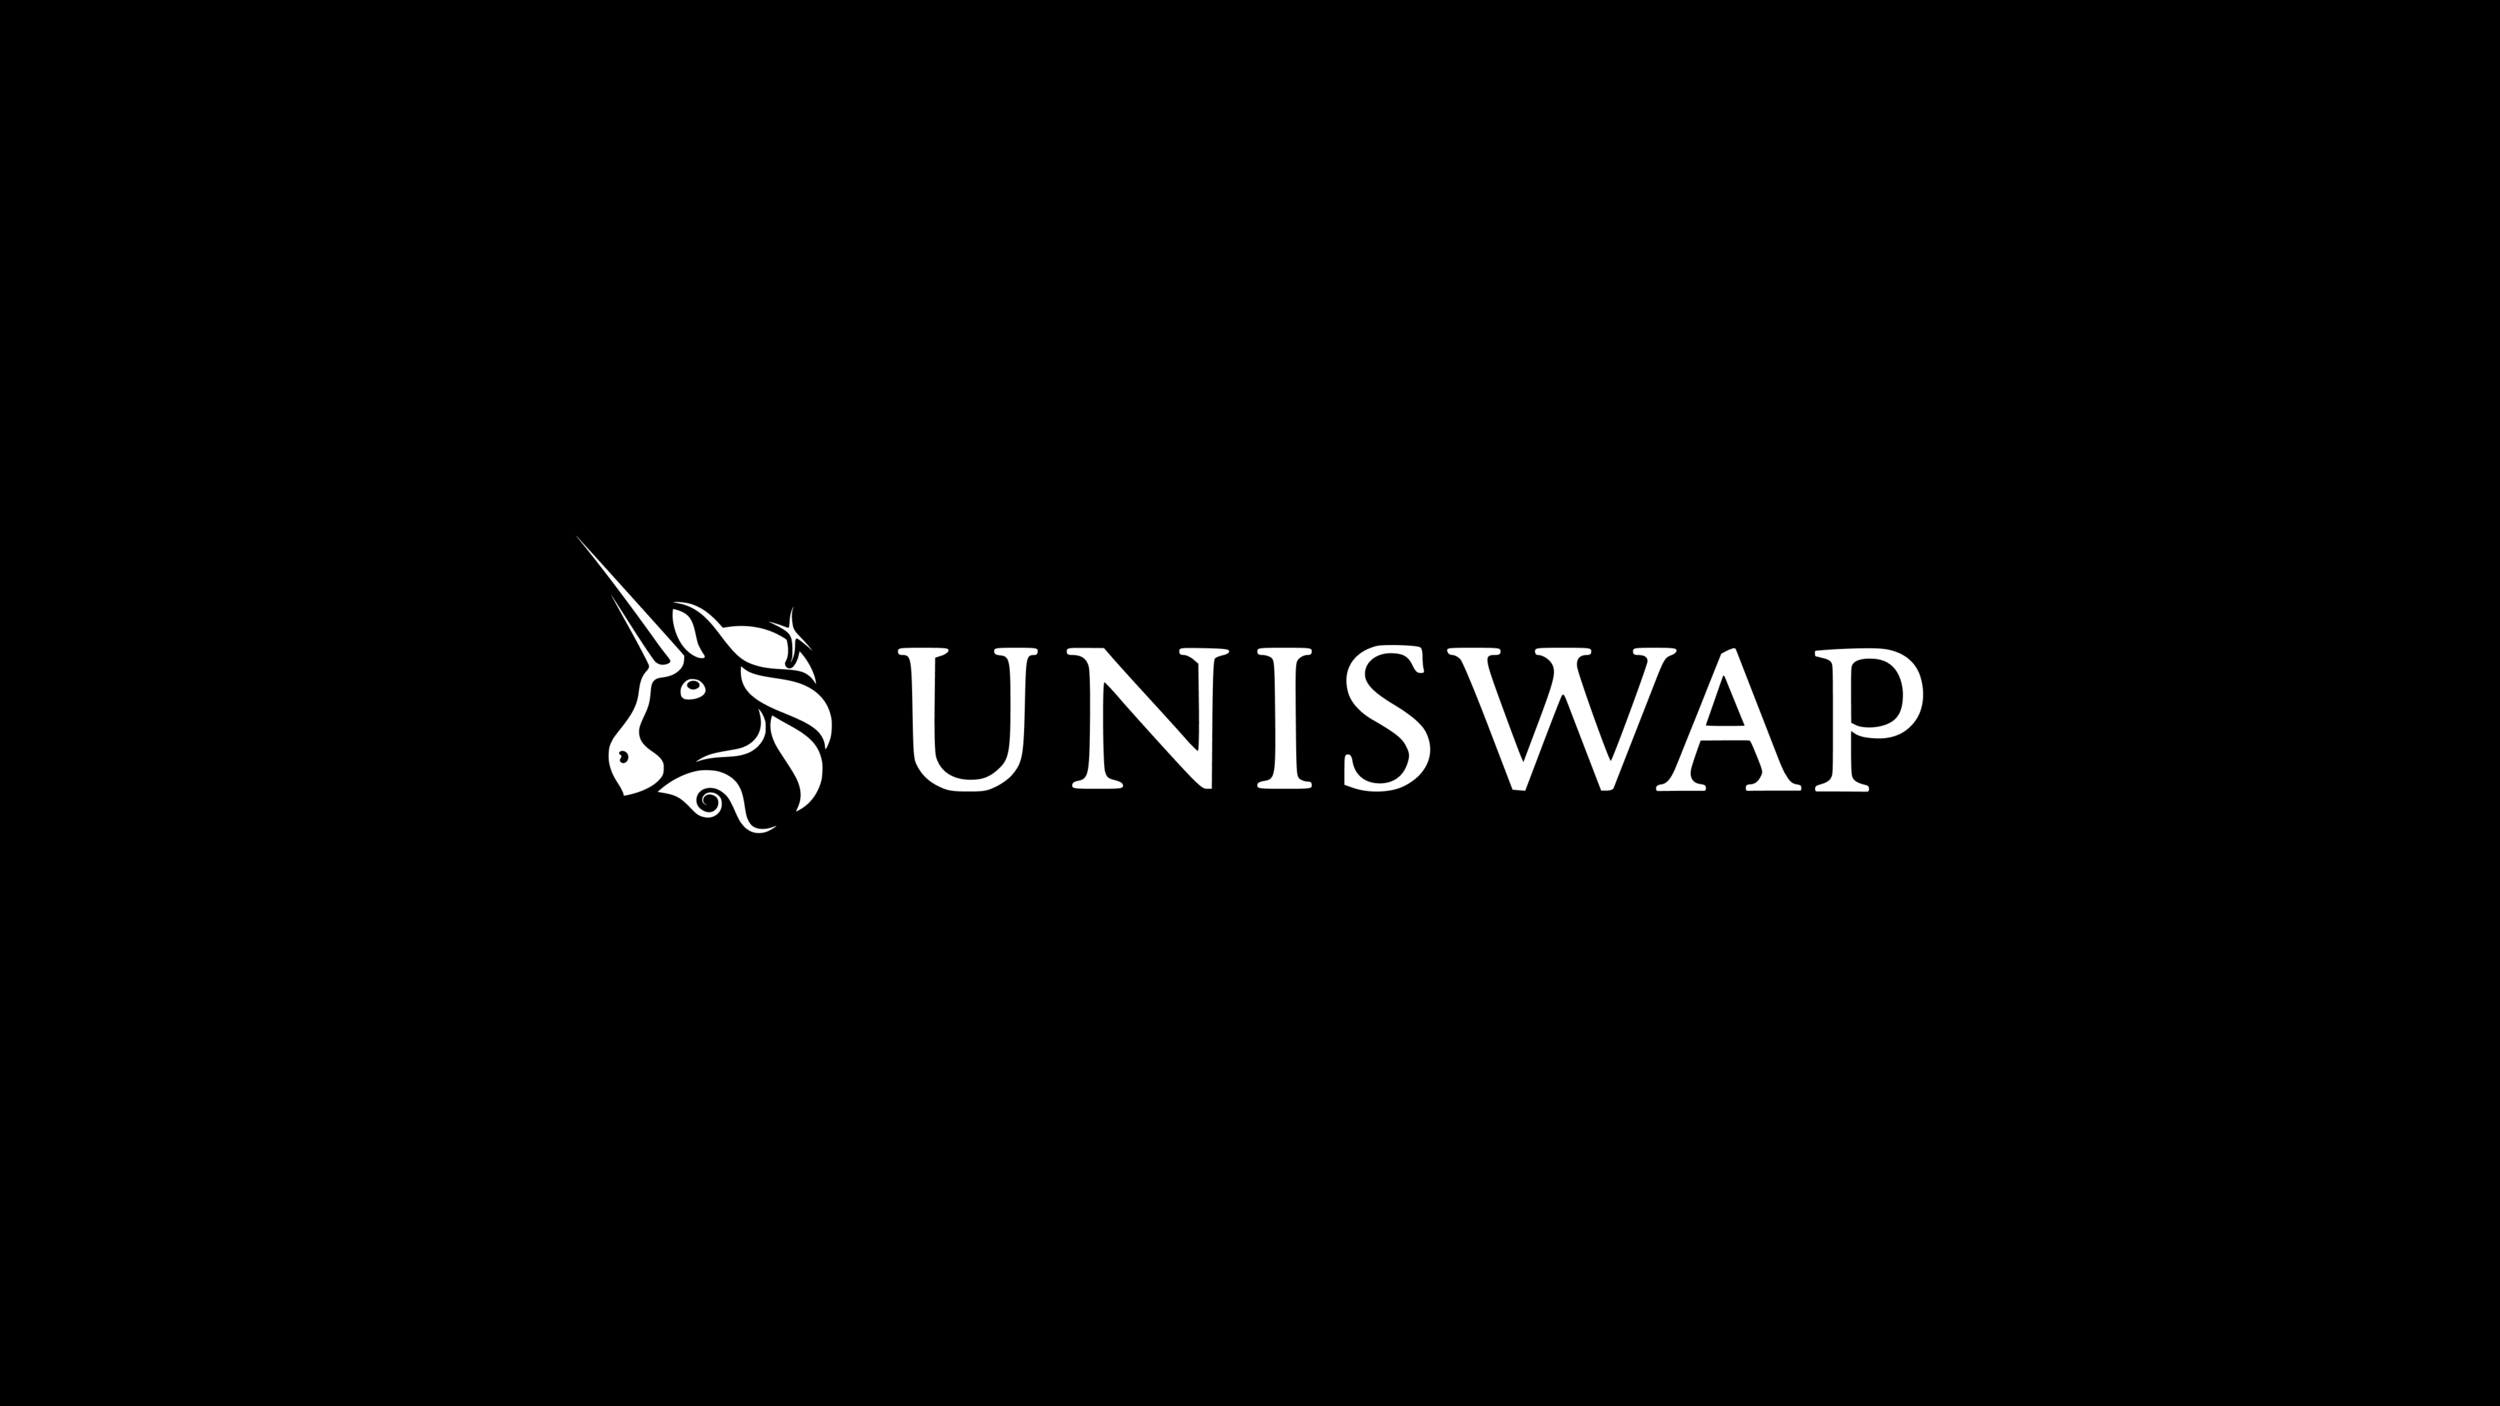 Uniswap (UNI) price jumps by 15% in DeFi, cryptocurrency market rebounds